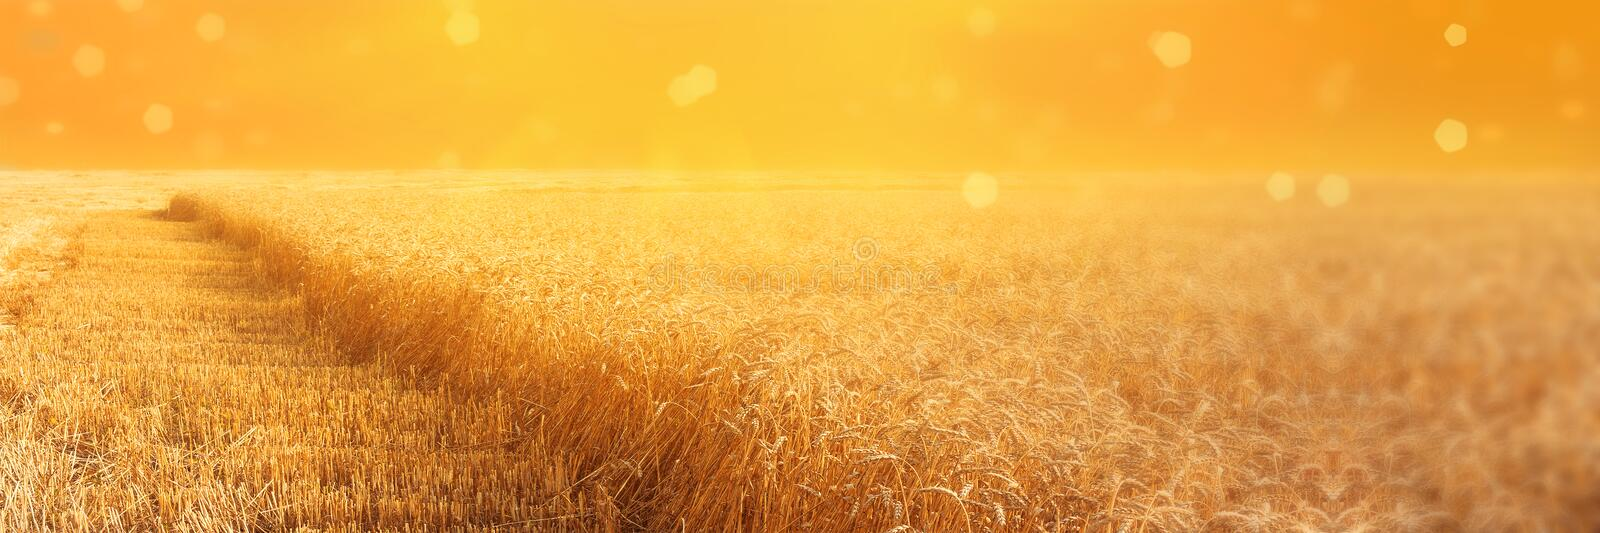 View of field of rye with beveled stripbeveled strips during harvesting at sunset. Summer agriculture rural background. Panoramic royalty free stock photography